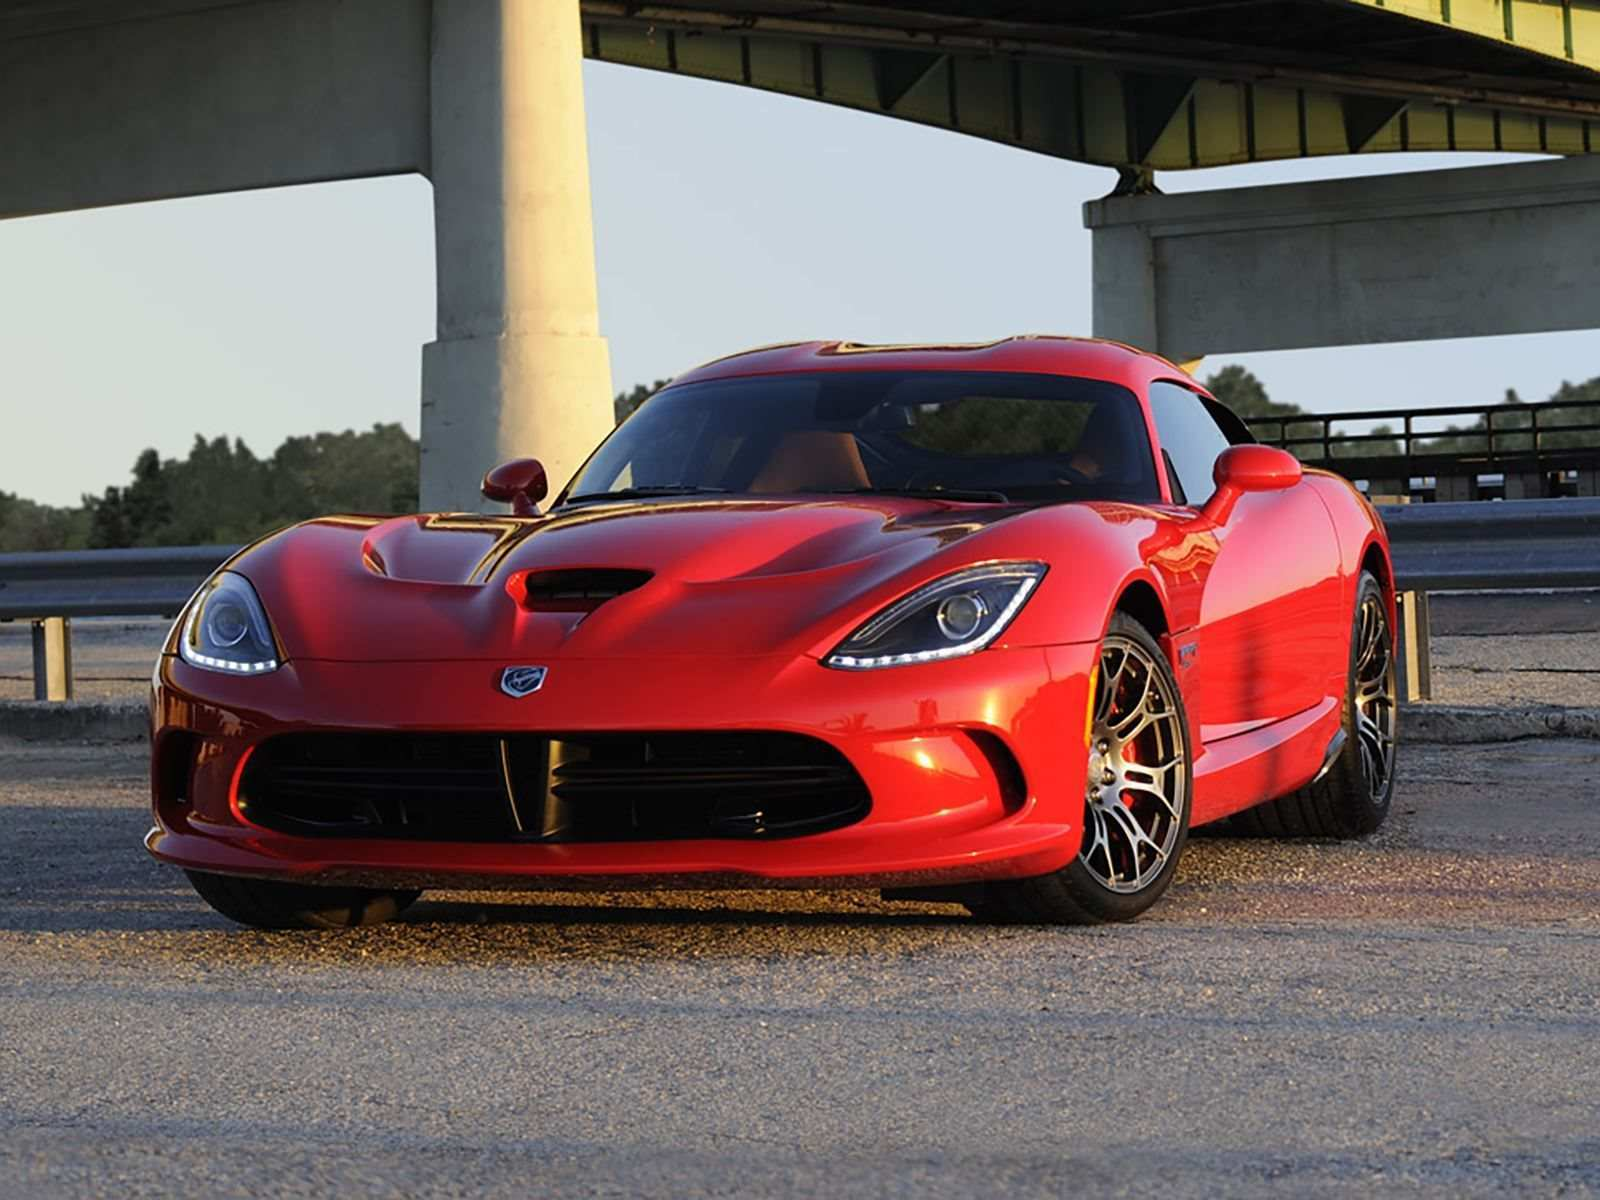 14 Best Review 2019 Dodge Viper Acr Photos by 2019 Dodge Viper Acr